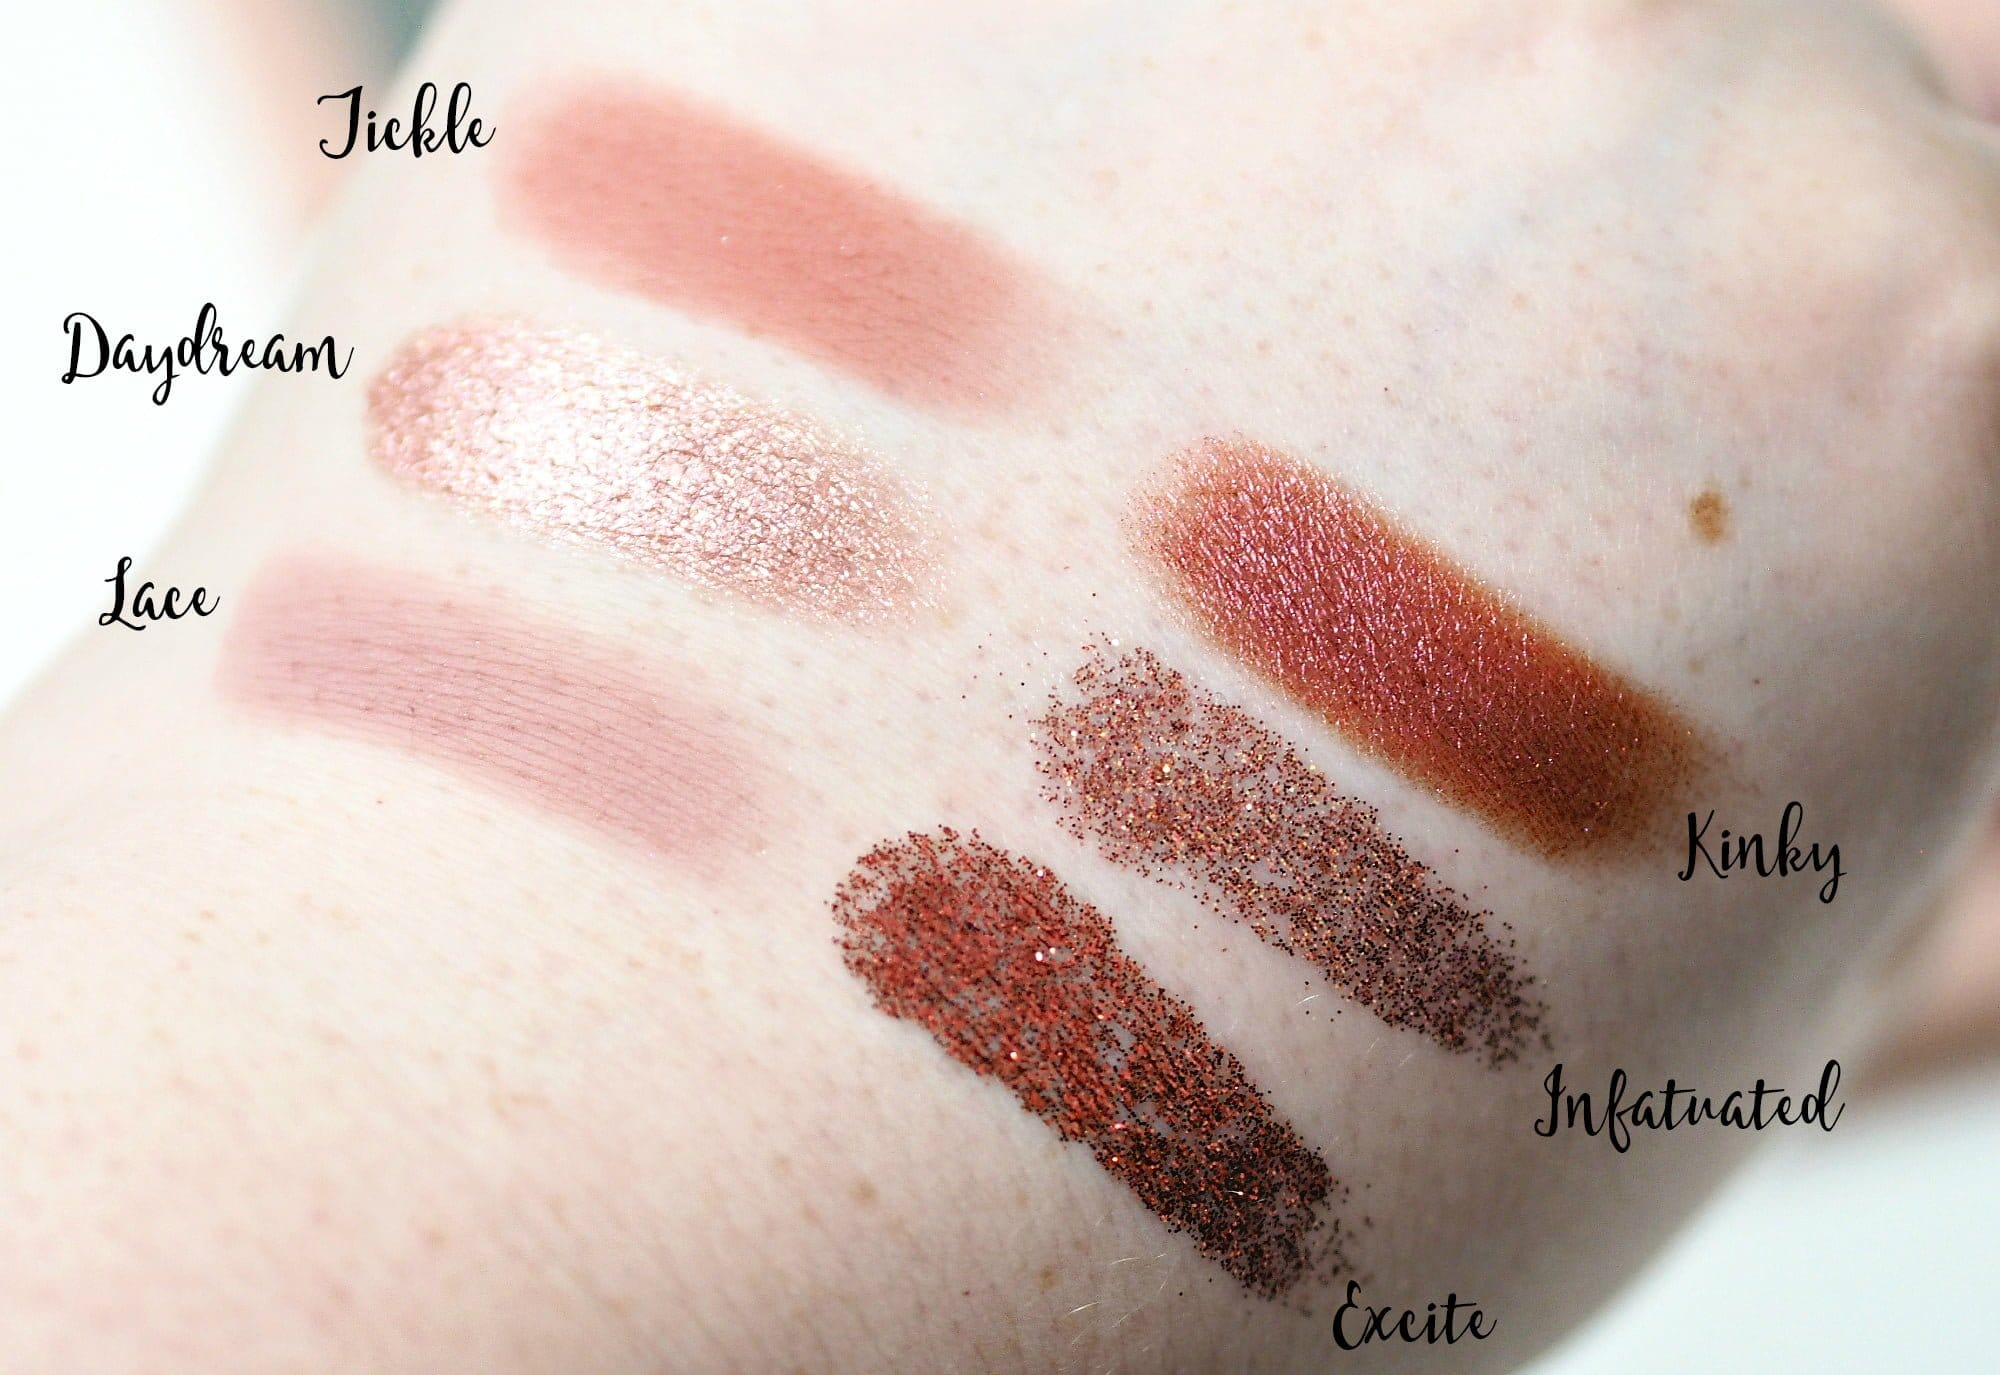 Huda Beauty The New Nude Eyeshadow Palette Review + Swatches